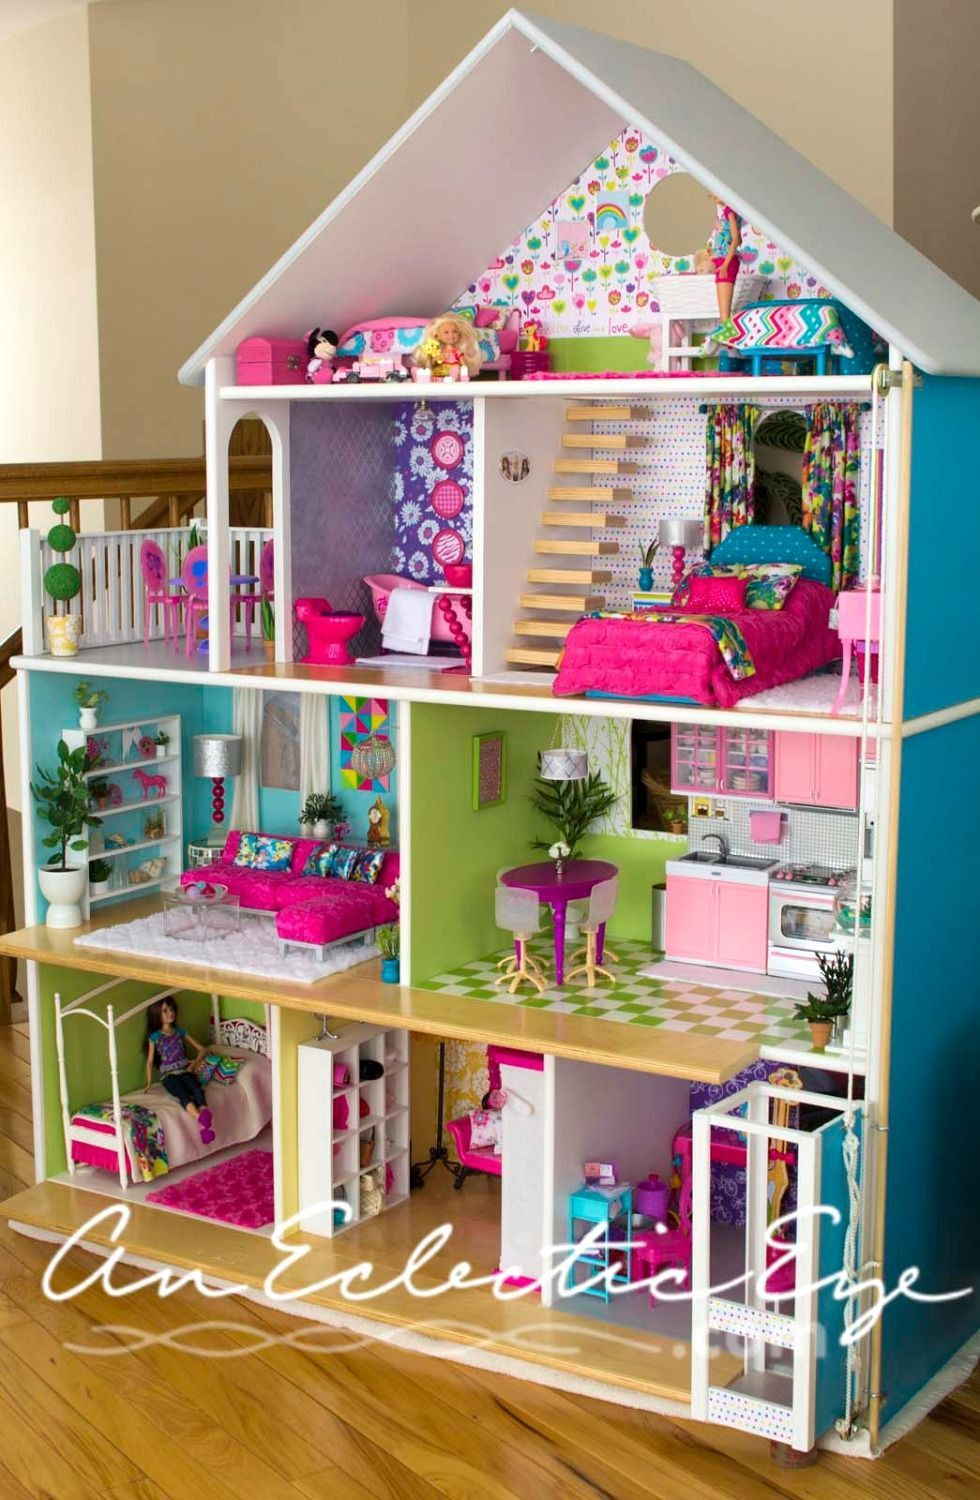 These Are The Best Download And Save This Ideas About 20 Best Diy Barbie House Plans Now Barbie Furniture Plans Barbie Furniture Doll House Plans